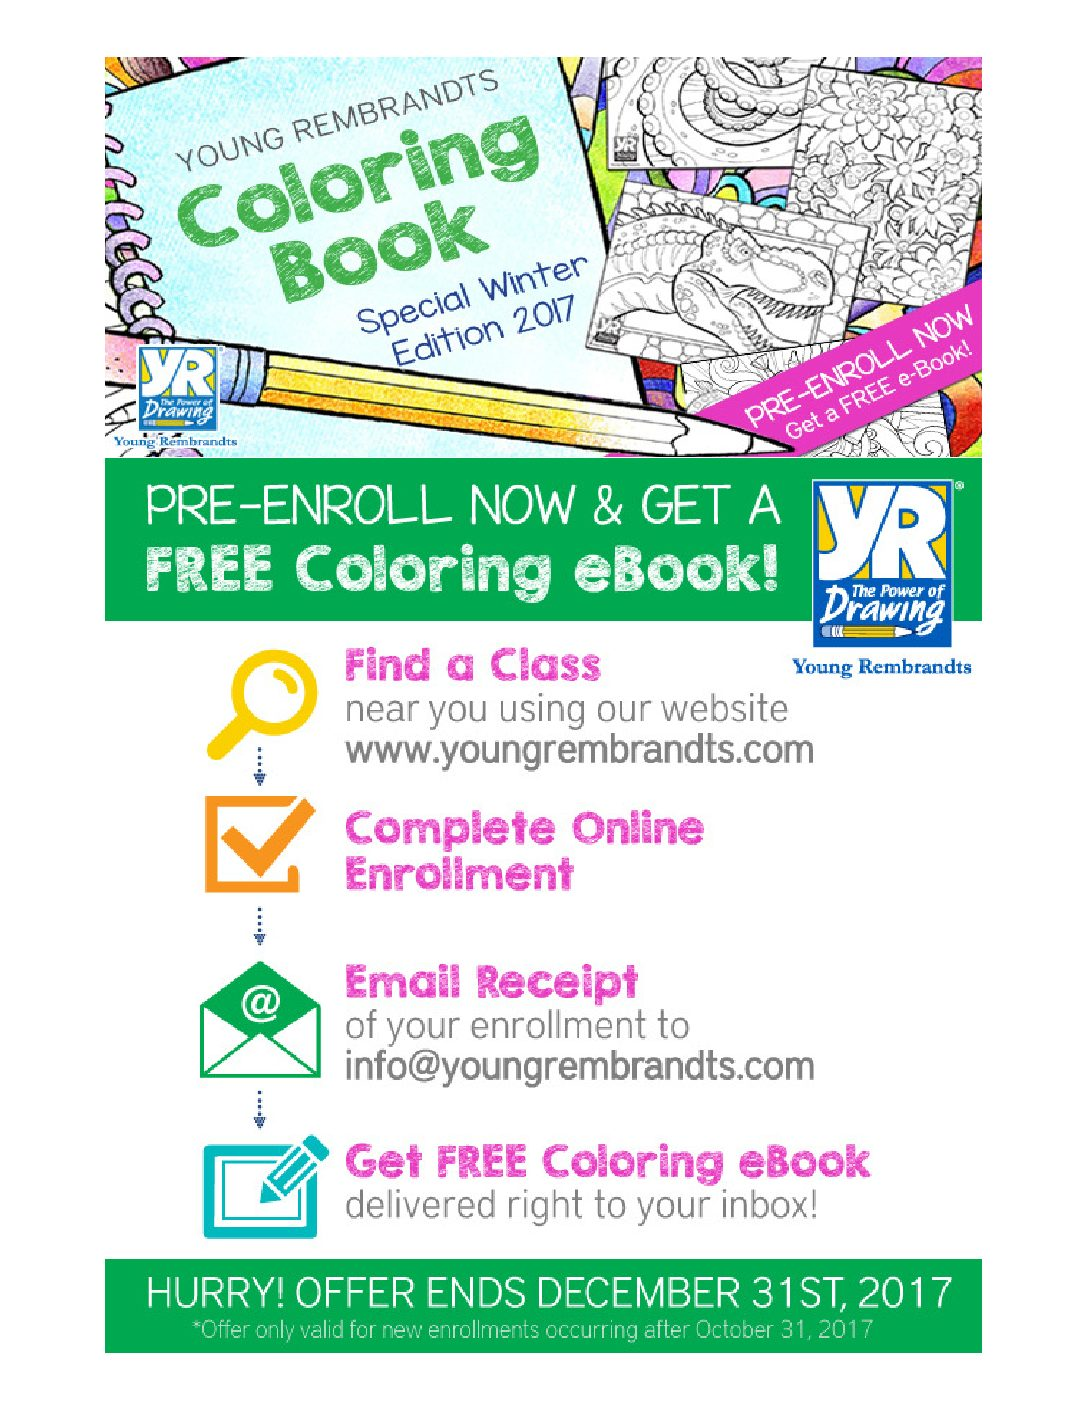 Stunning Coloring Contest Flyer Photos - Coloring 2018 ...